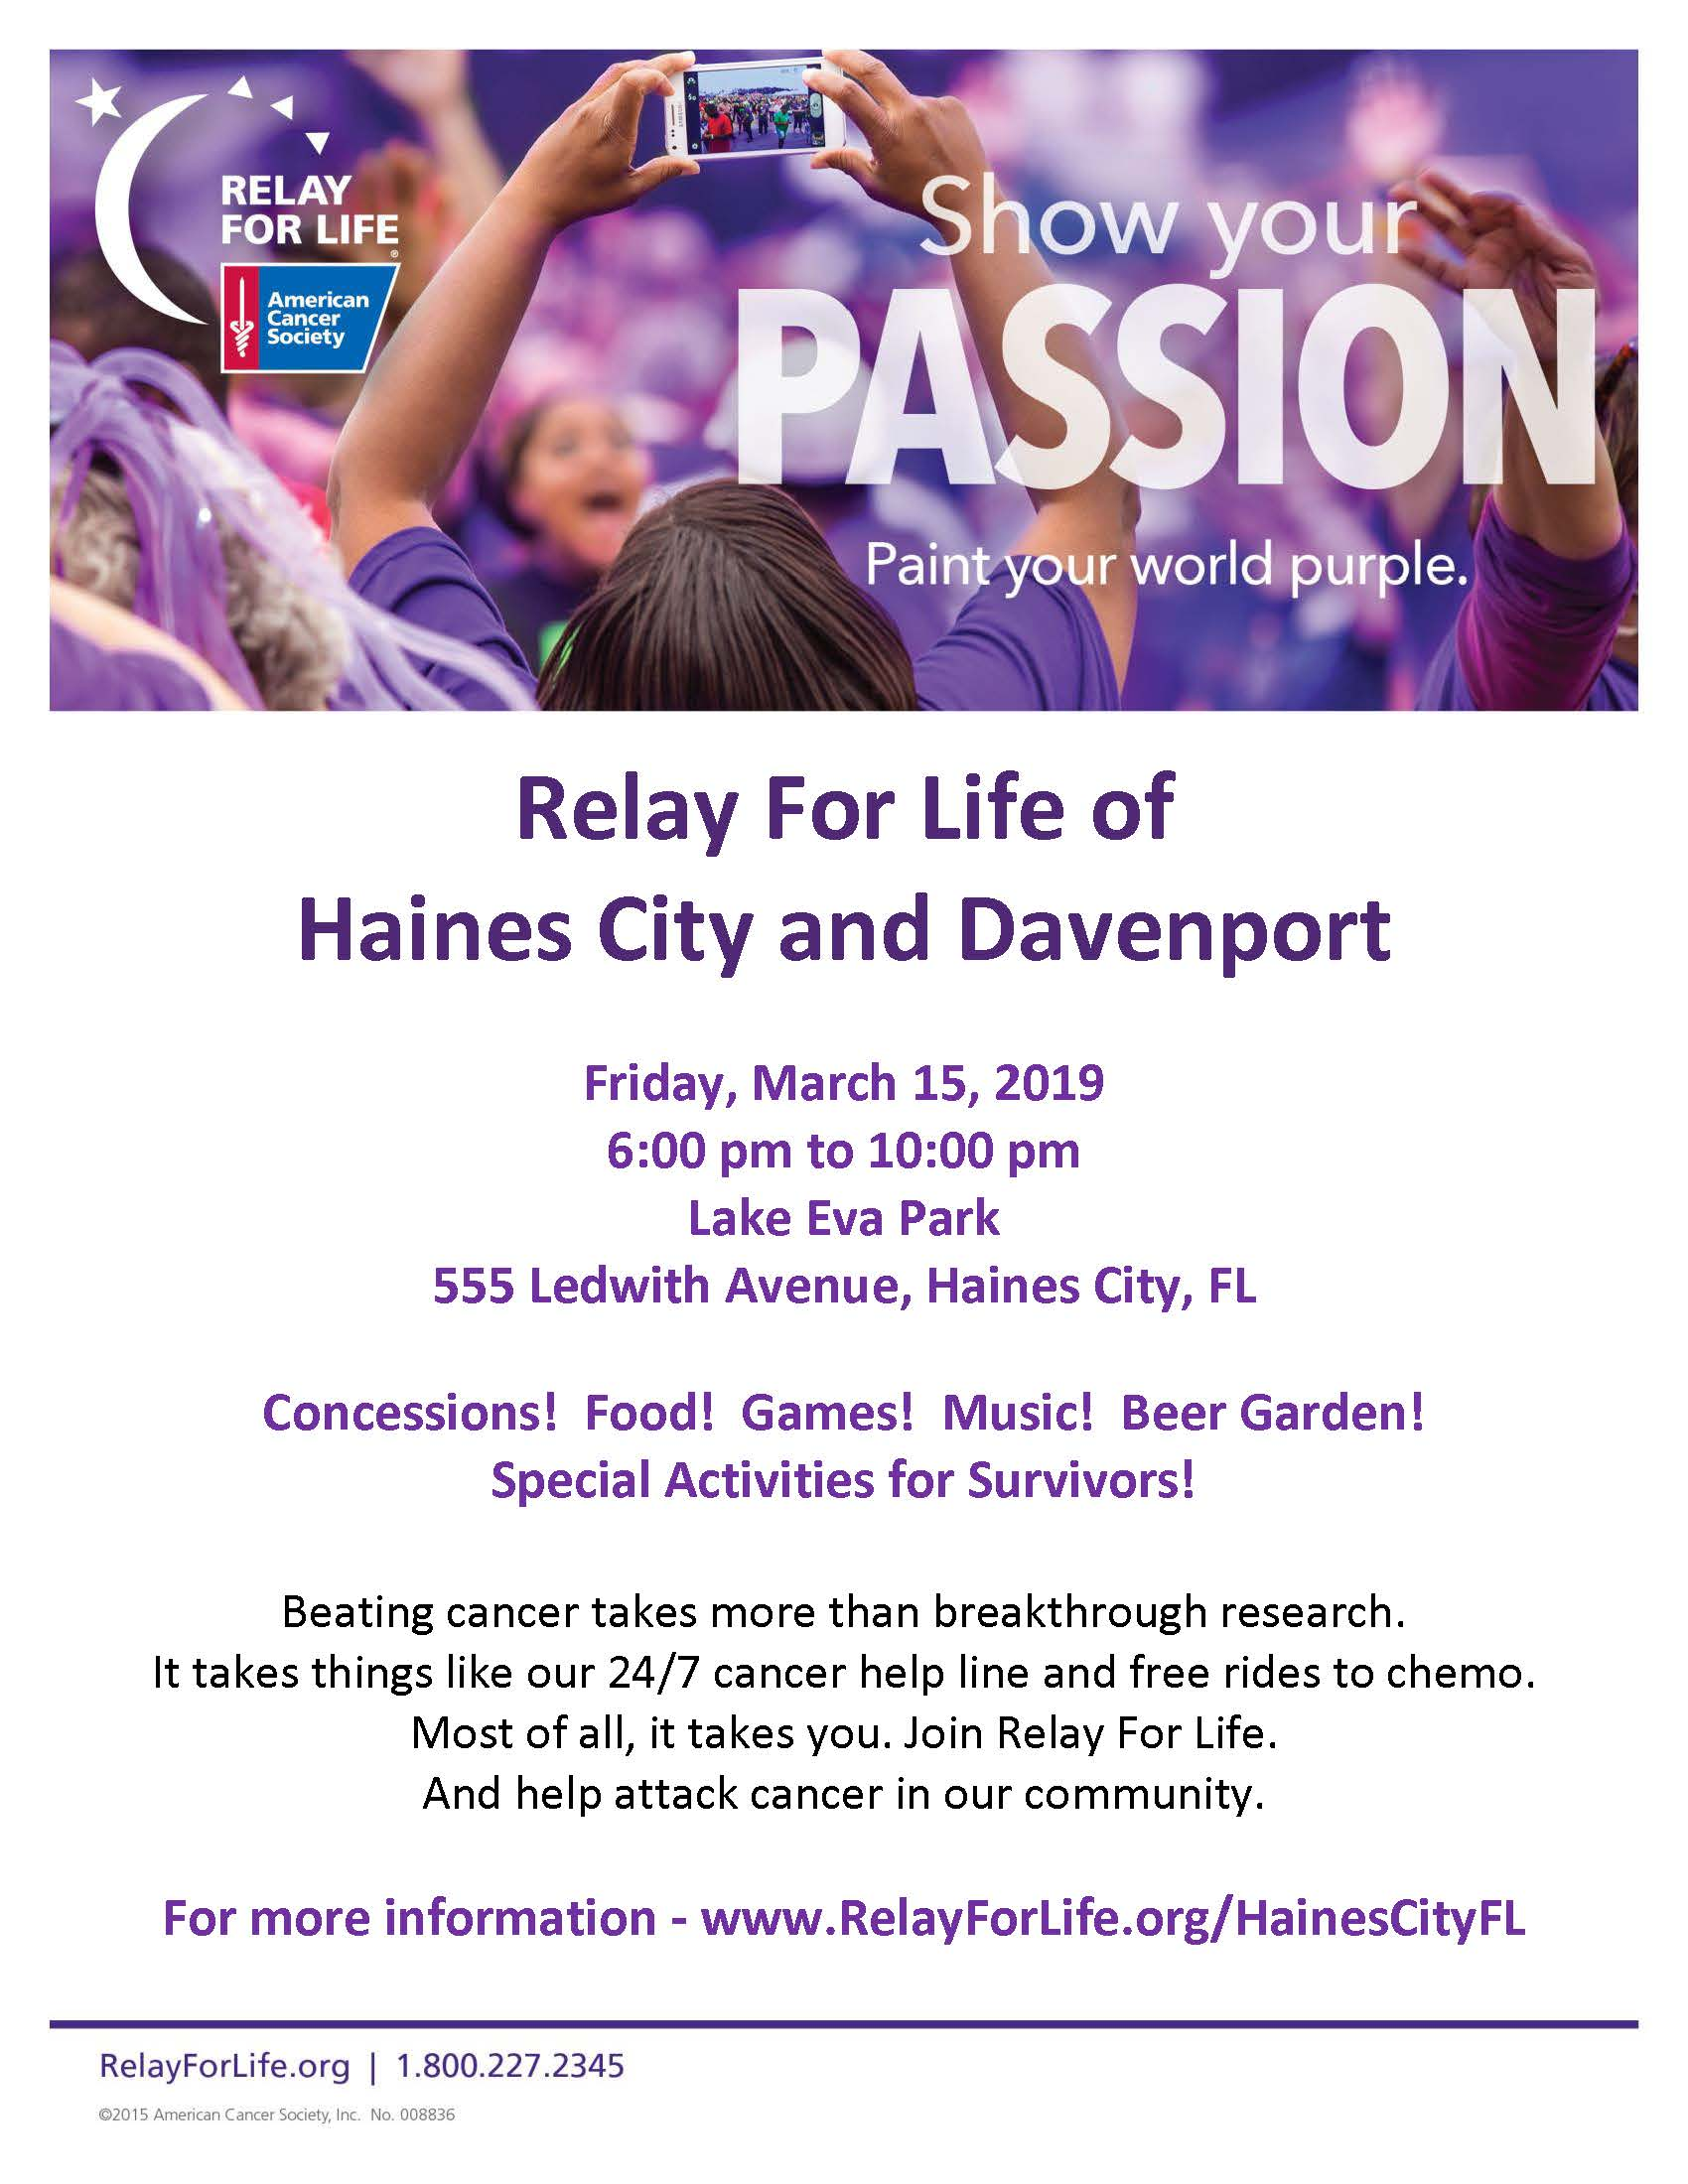 Adv Flyer-Relay For Life Haines City  Davenport (PDF IMAGE)